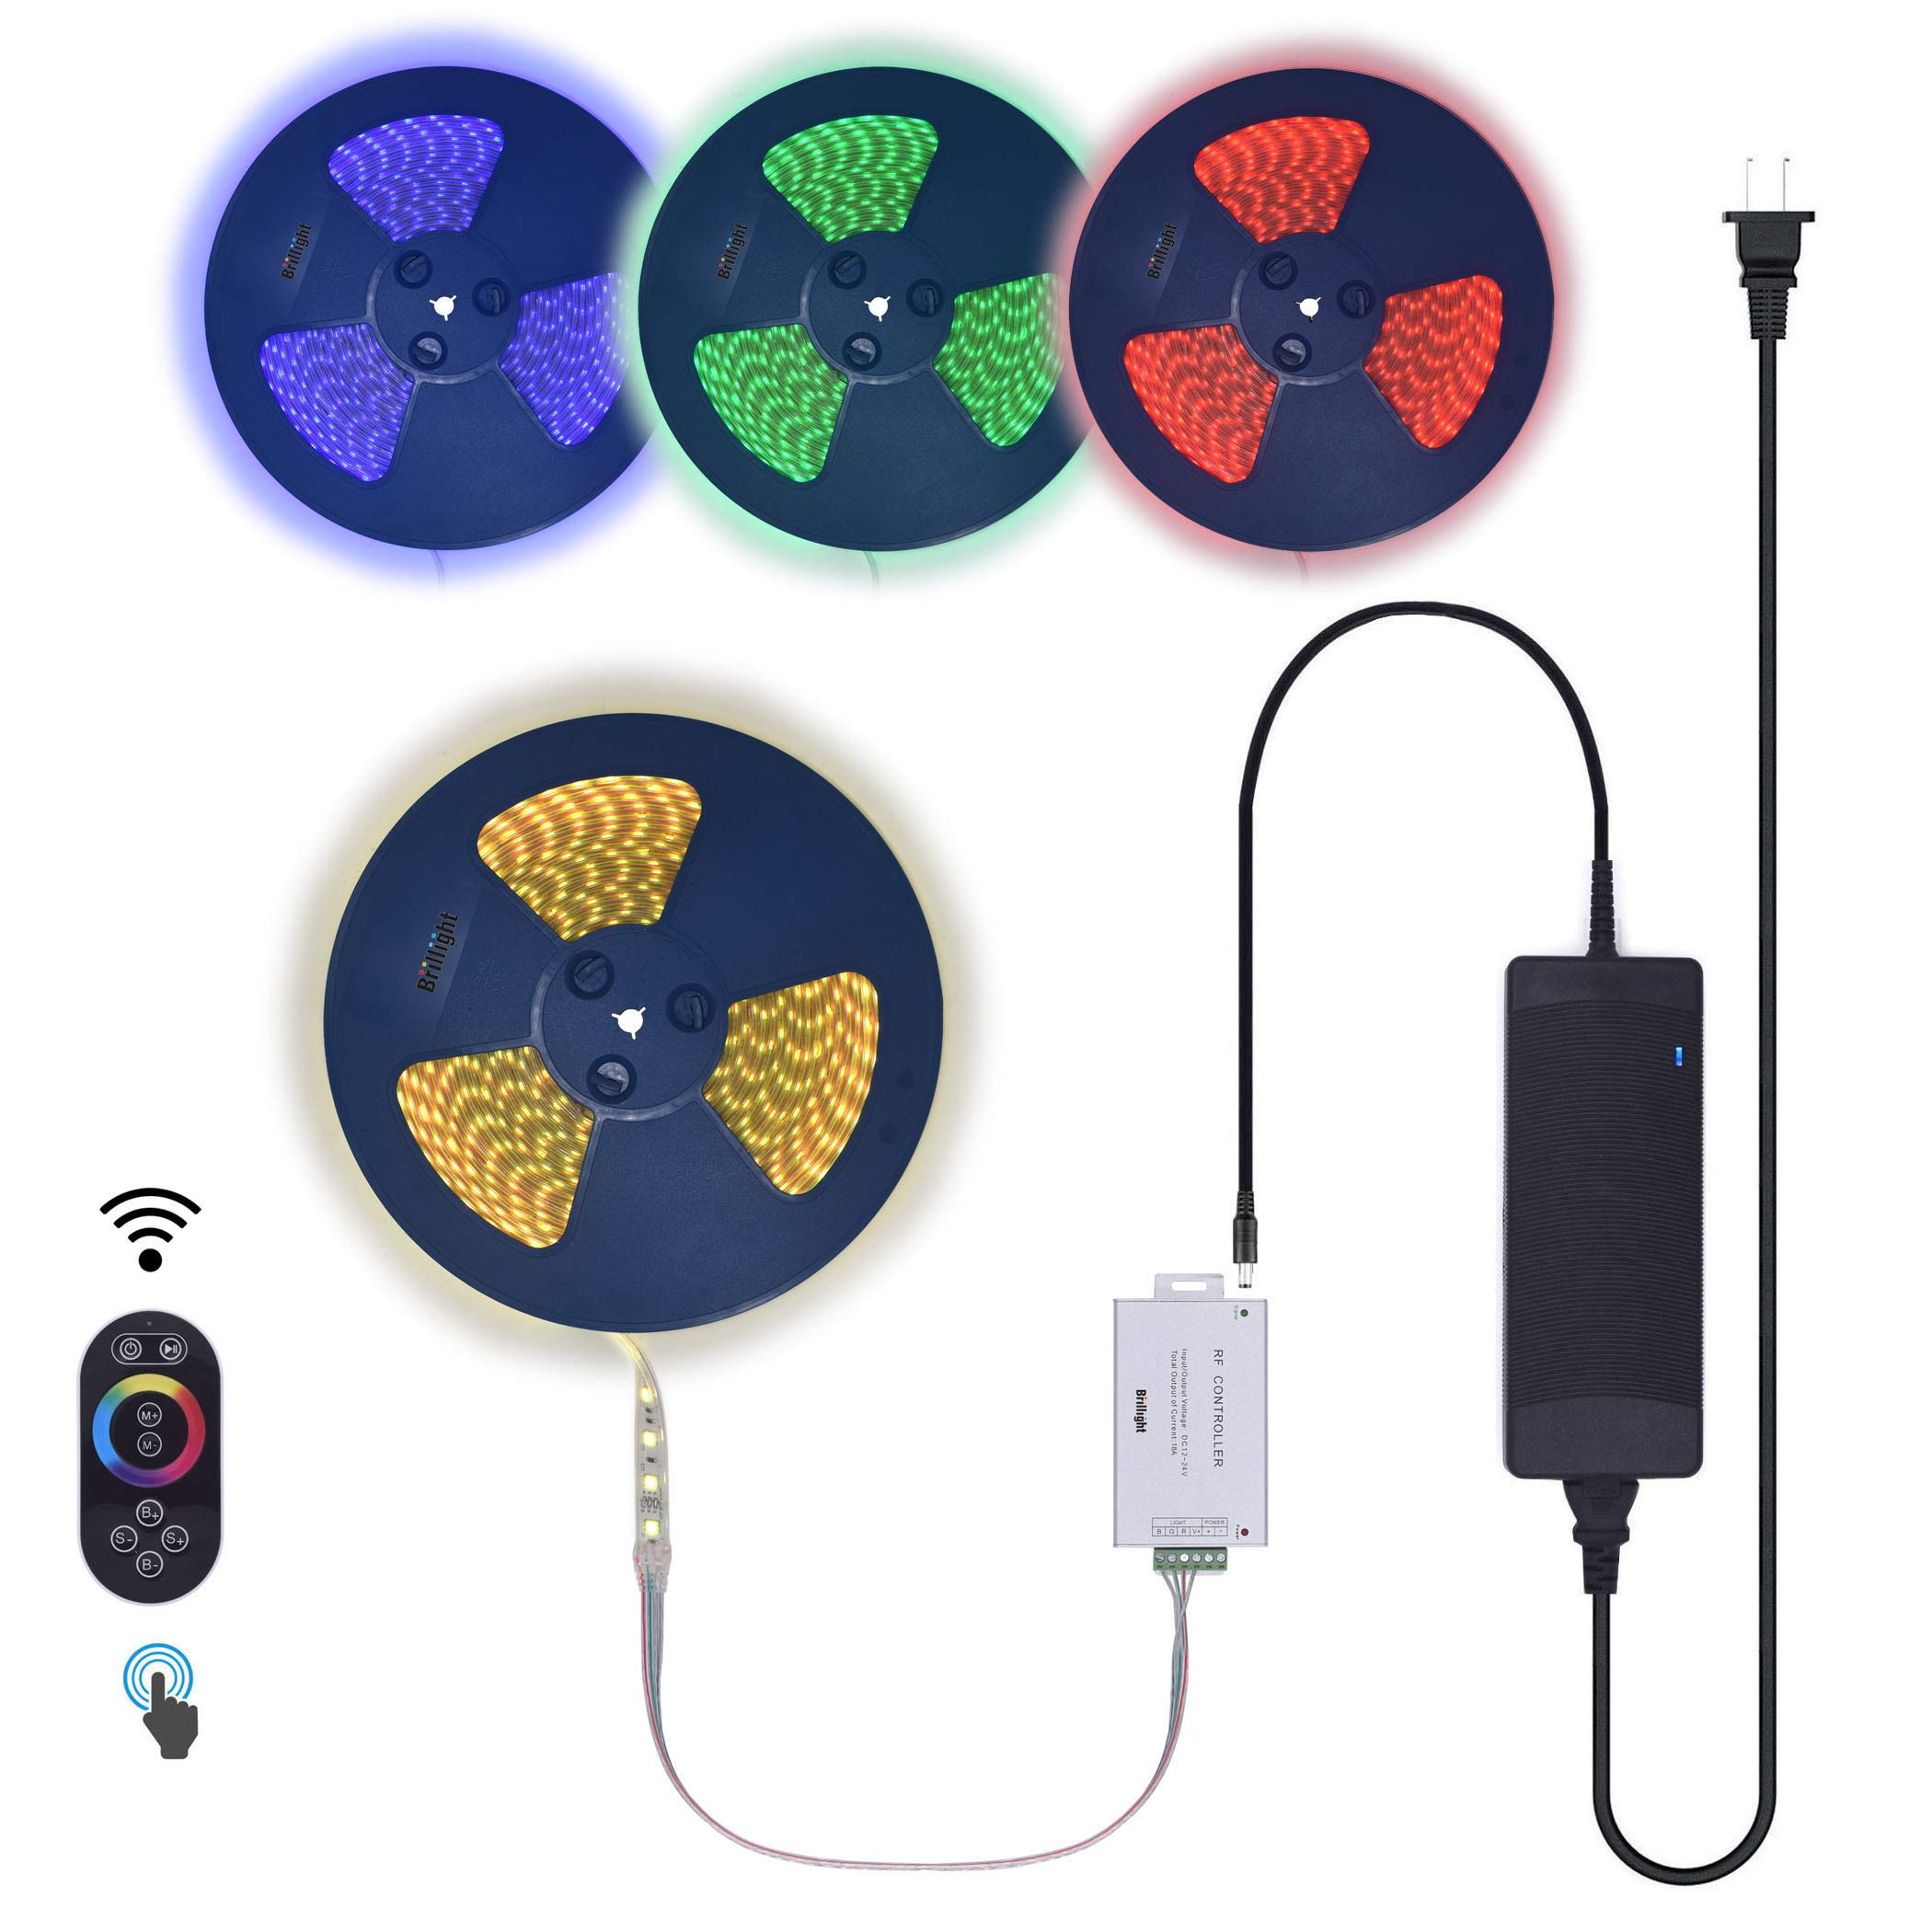 130 Feet RGB LED Strip Light 24V Low Voltage Long Runs Flexible Silicone Tube Encase Waterproof Outdoor Rope Light incl RF Touch Colors Changing Controller